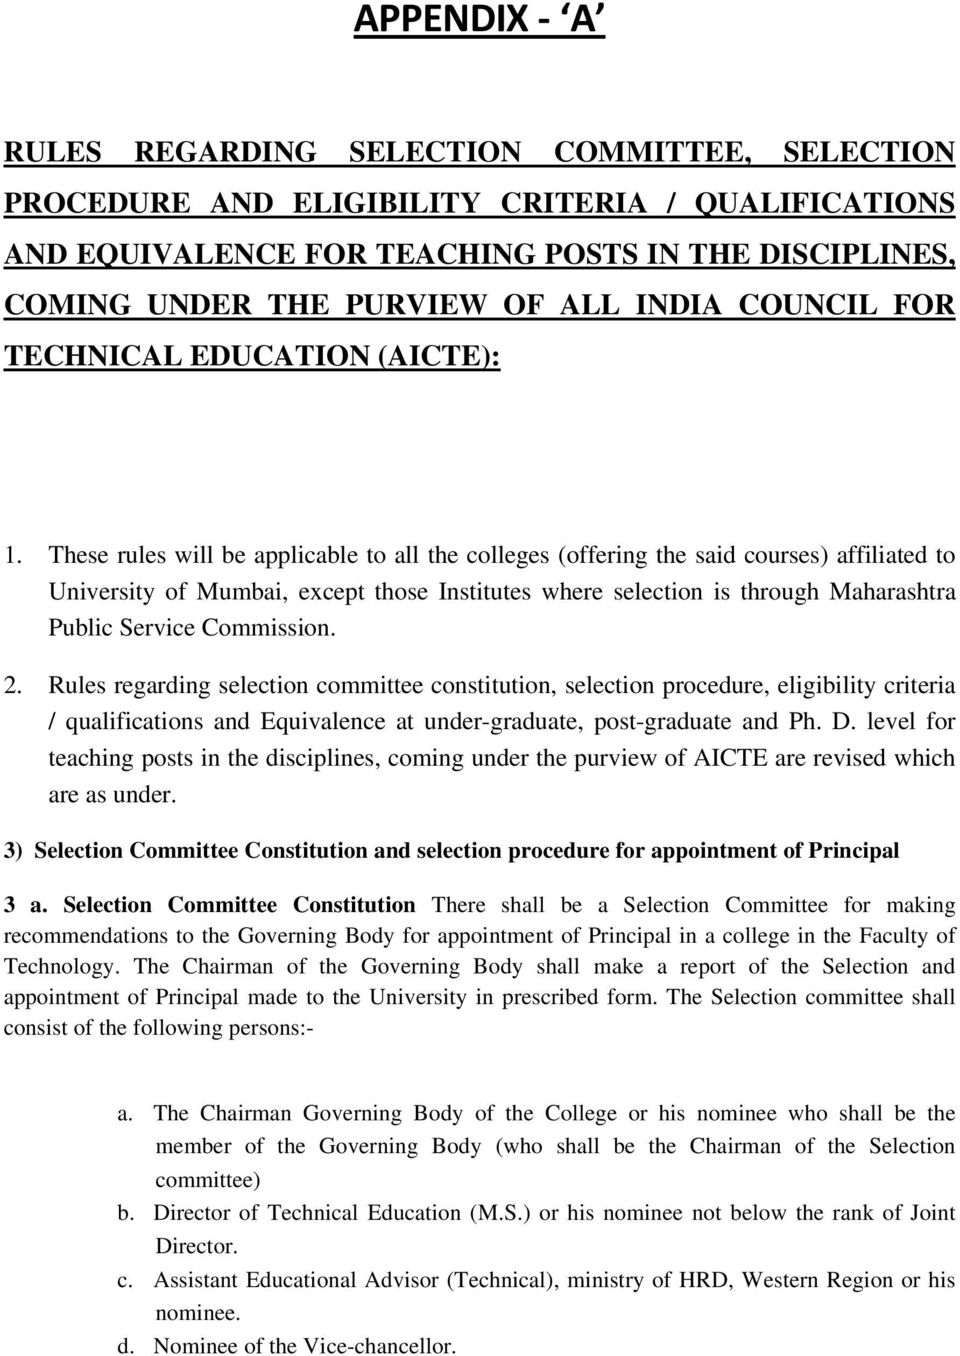 These rules will be applicable to all the colleges (offering the said courses) affiliated to University of Mumbai, except those Institutes where selection is through Maharashtra Public Service